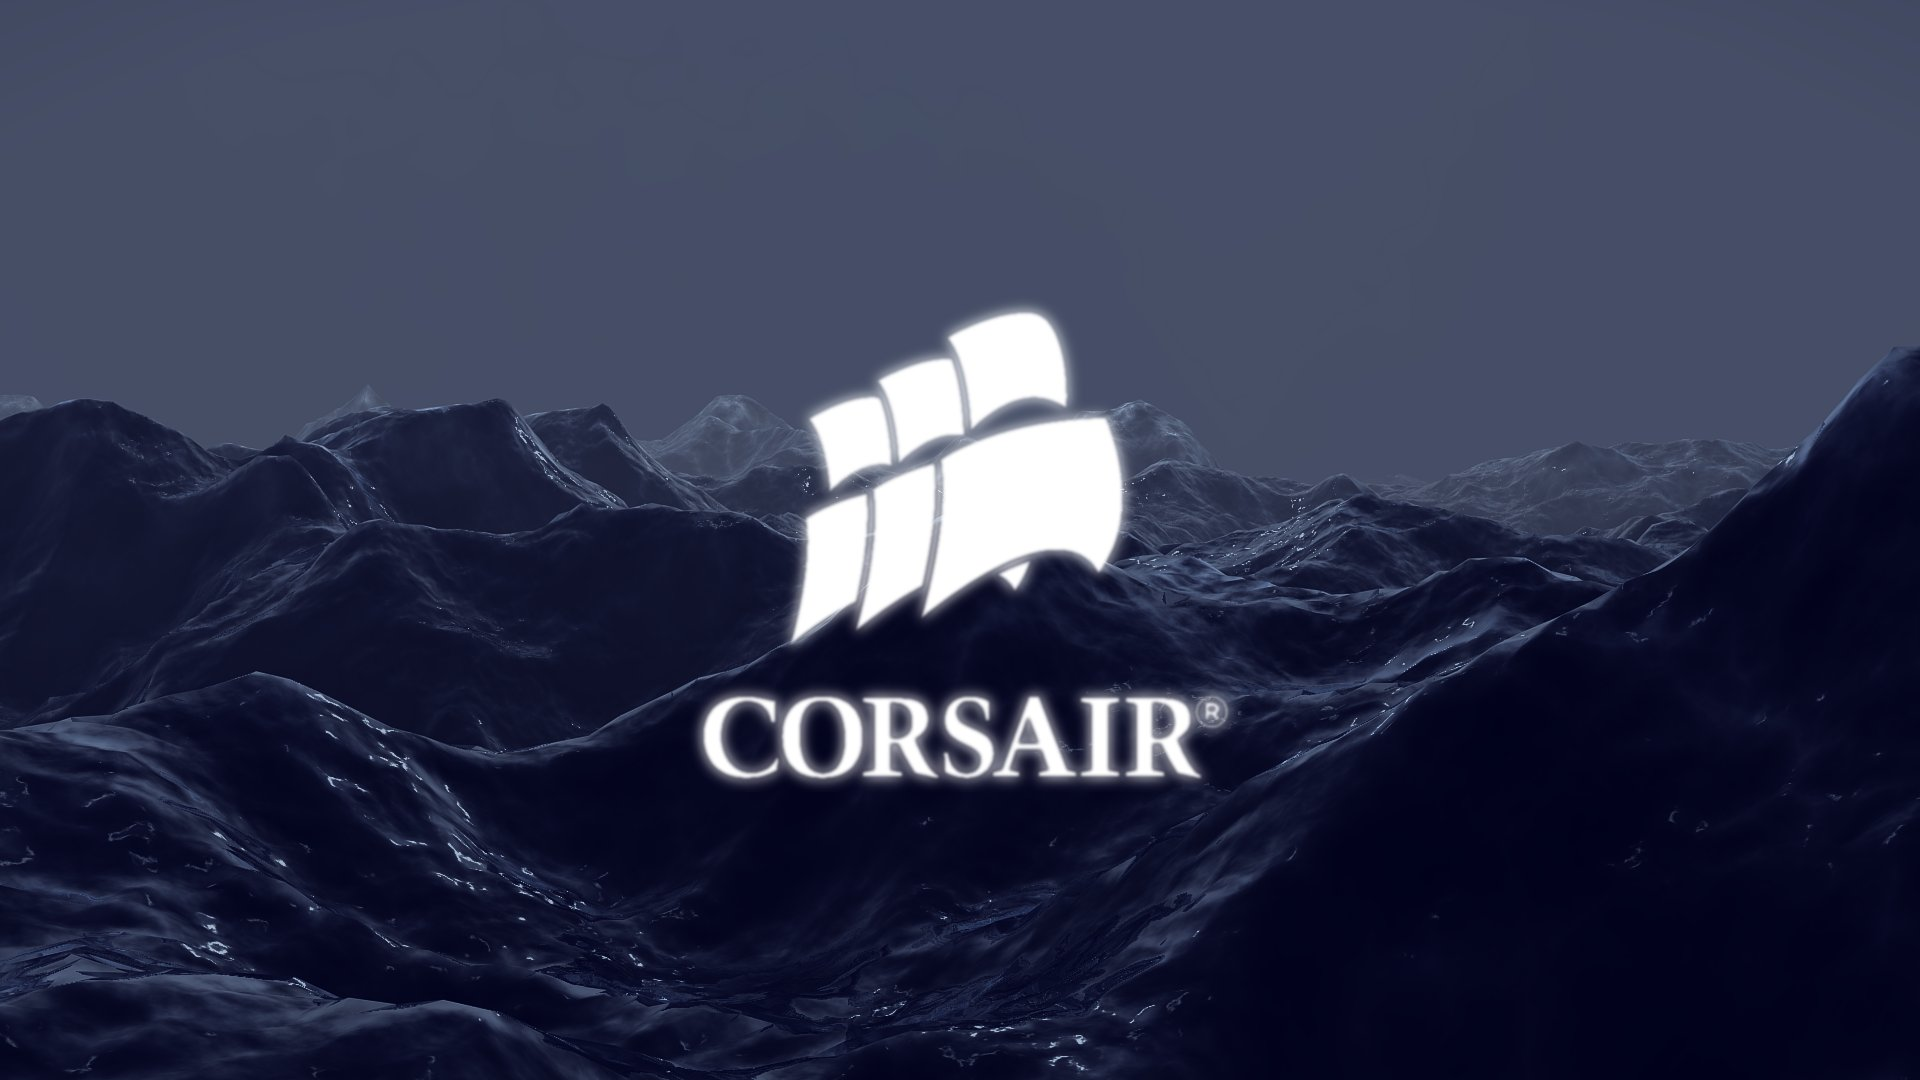 47 Corsair Wallpaper 19x1080 On Wallpapersafari